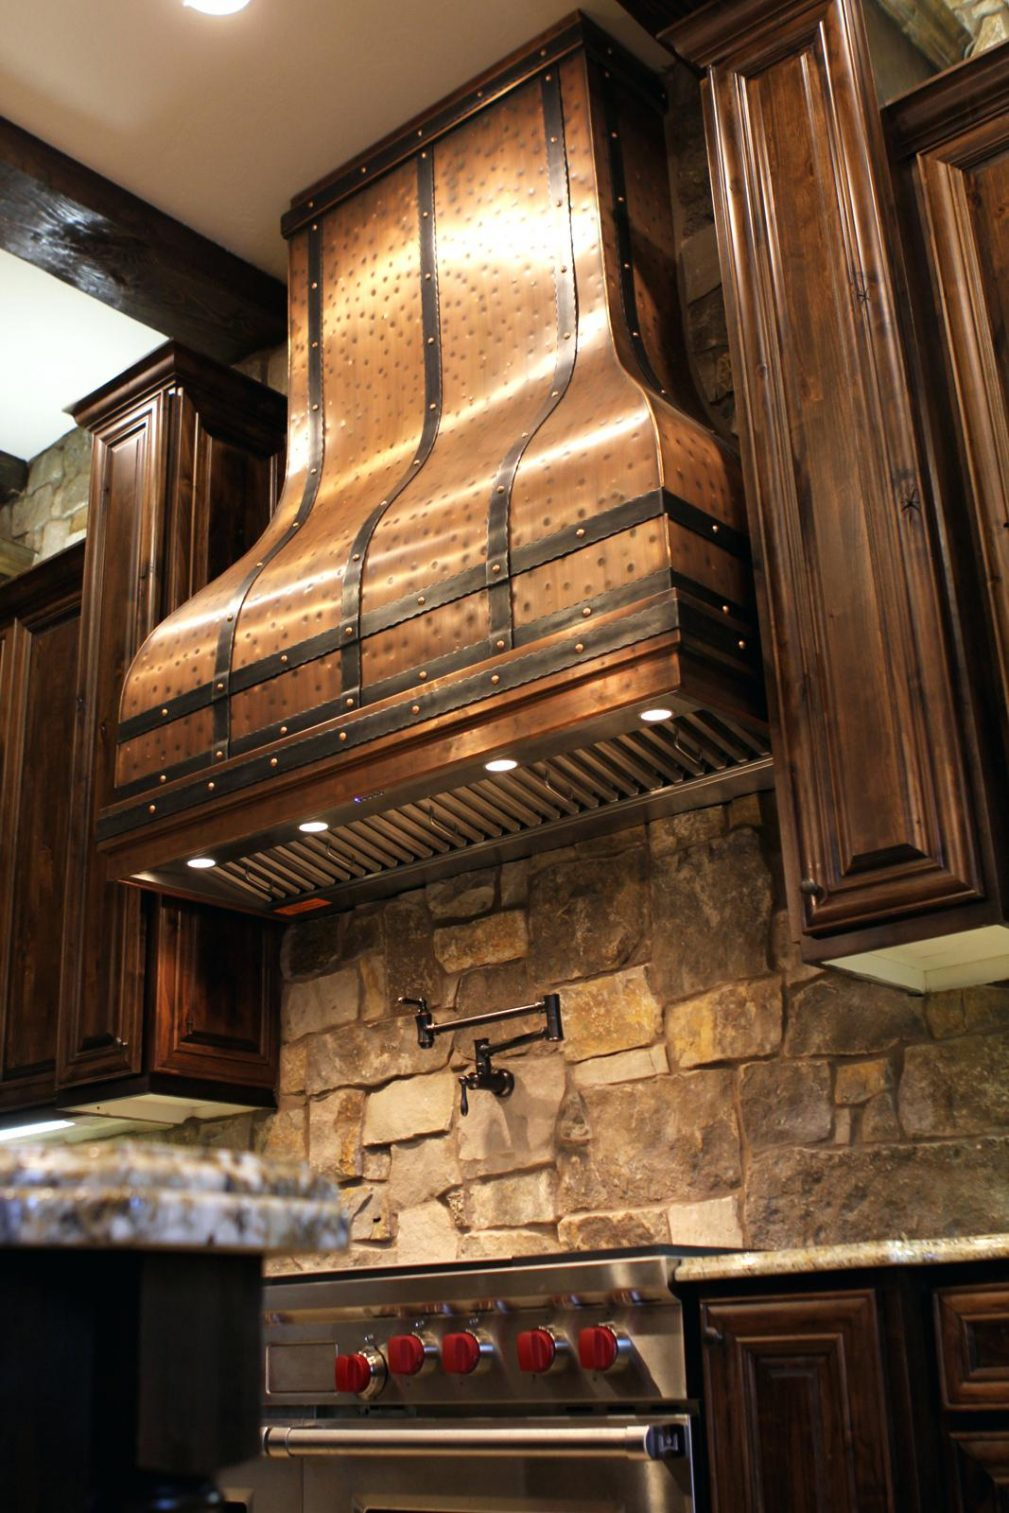 large kitchen range hood, sink and dining table